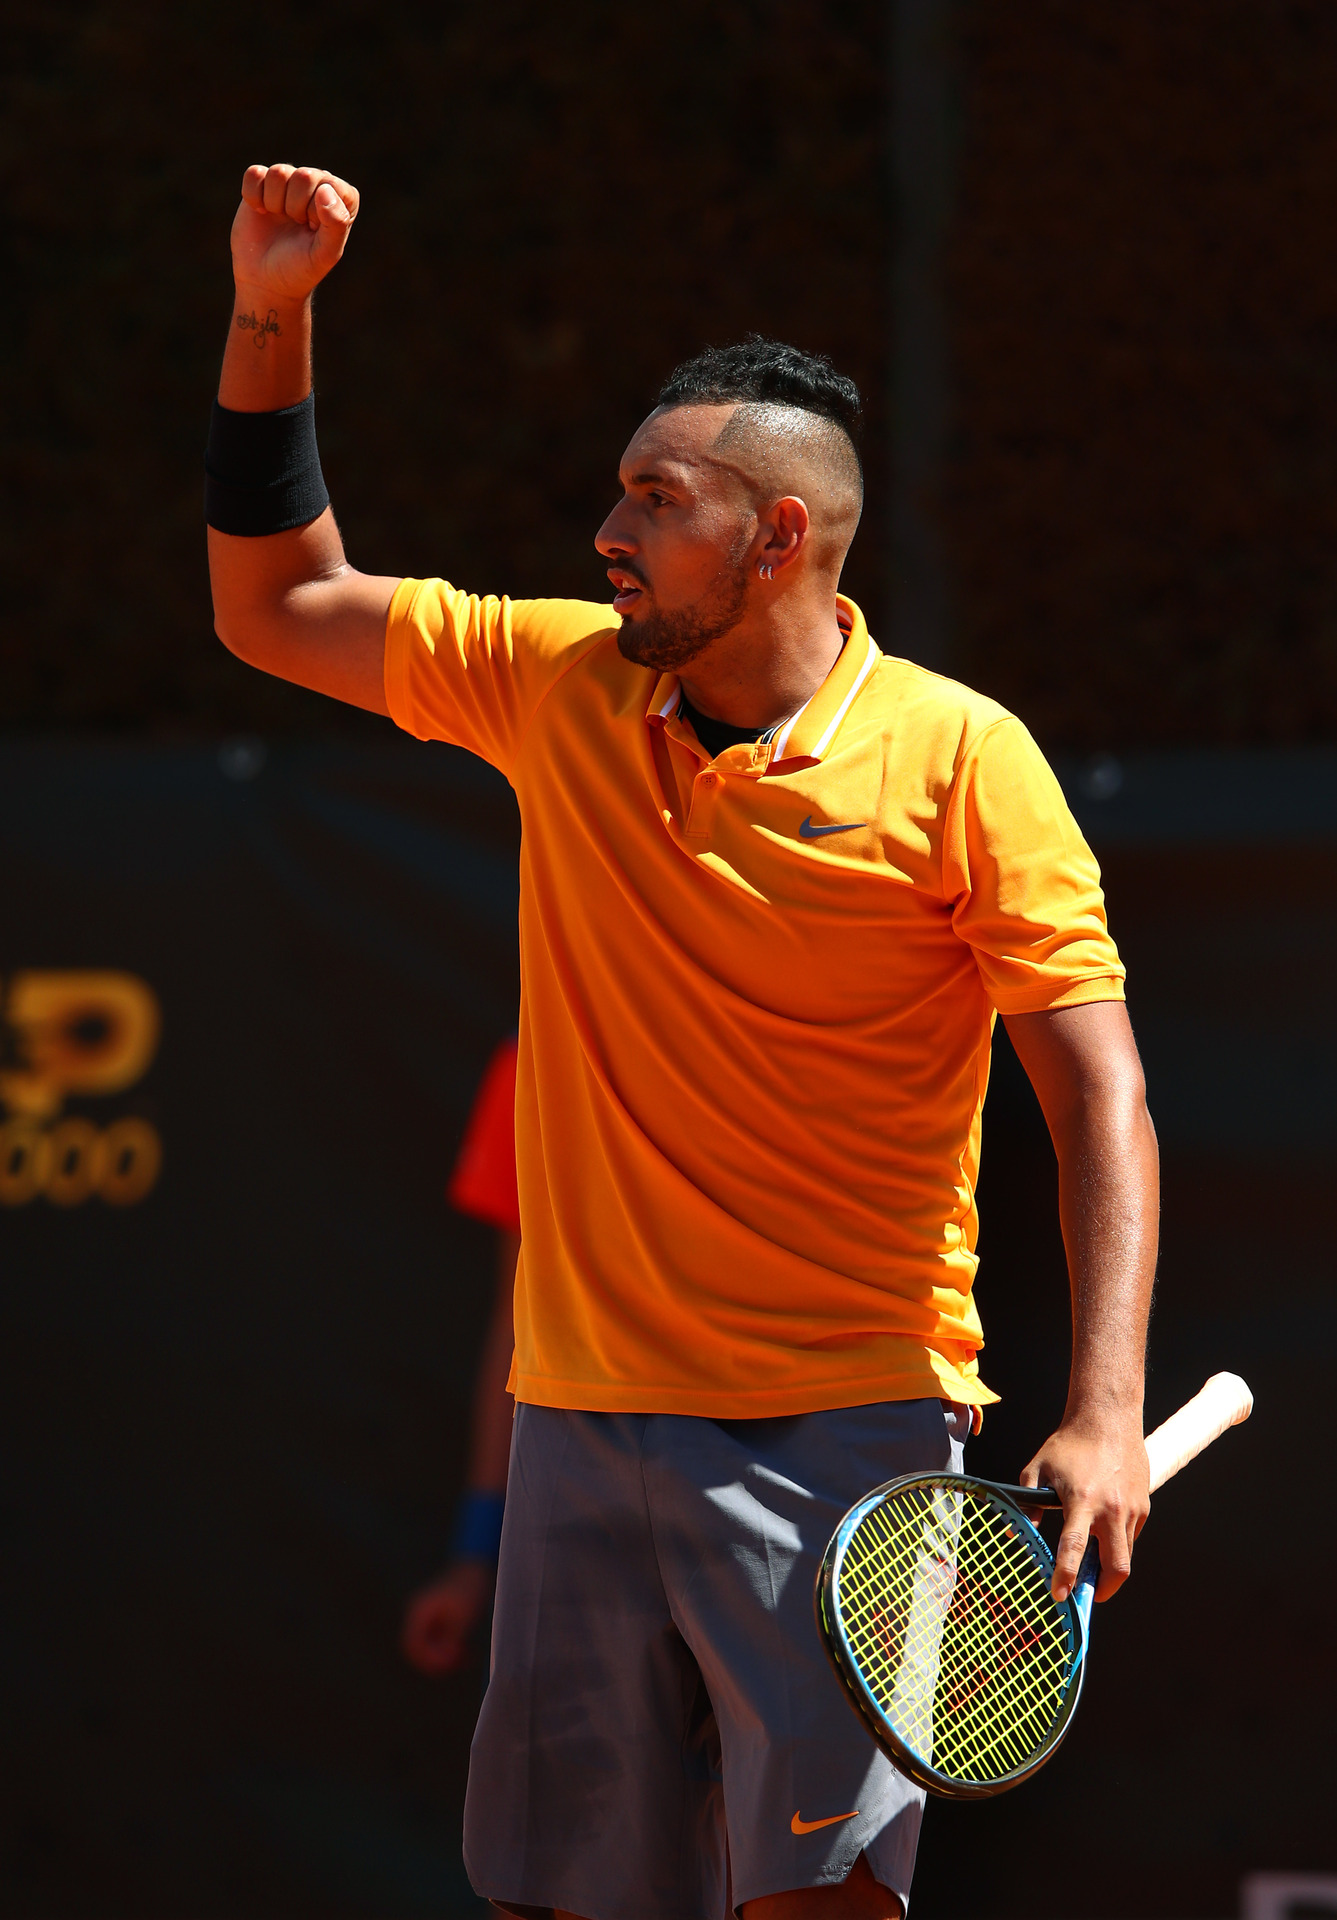 Tennis: Players split on Kyrgios ban after outburst